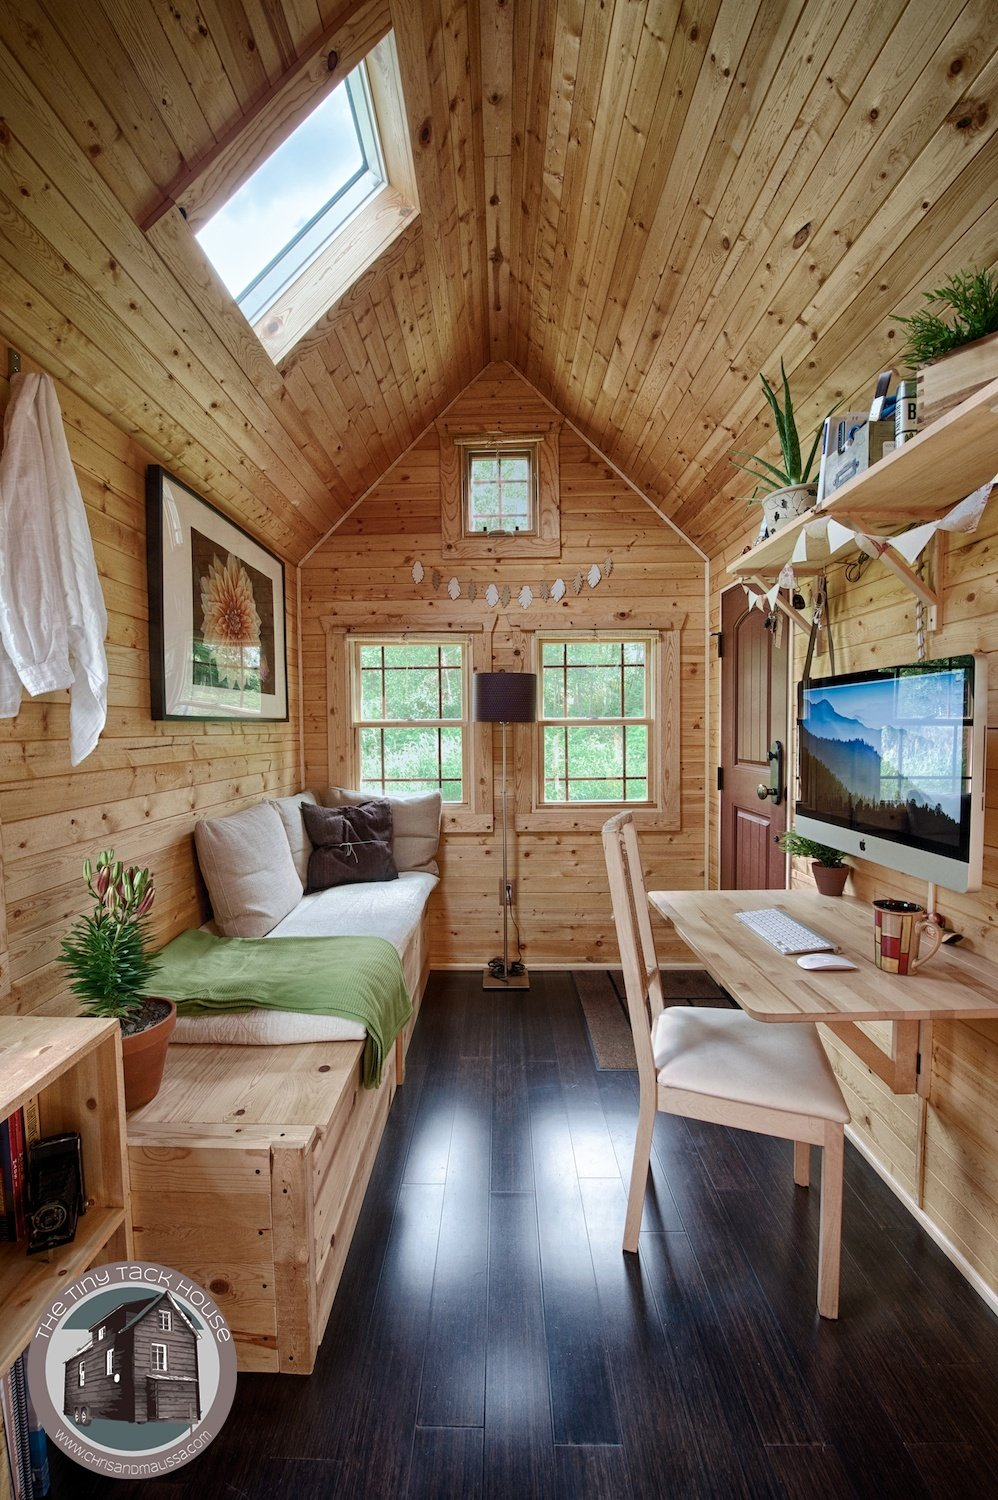 16 tiny houses you wish you could live in for House designs interior photos